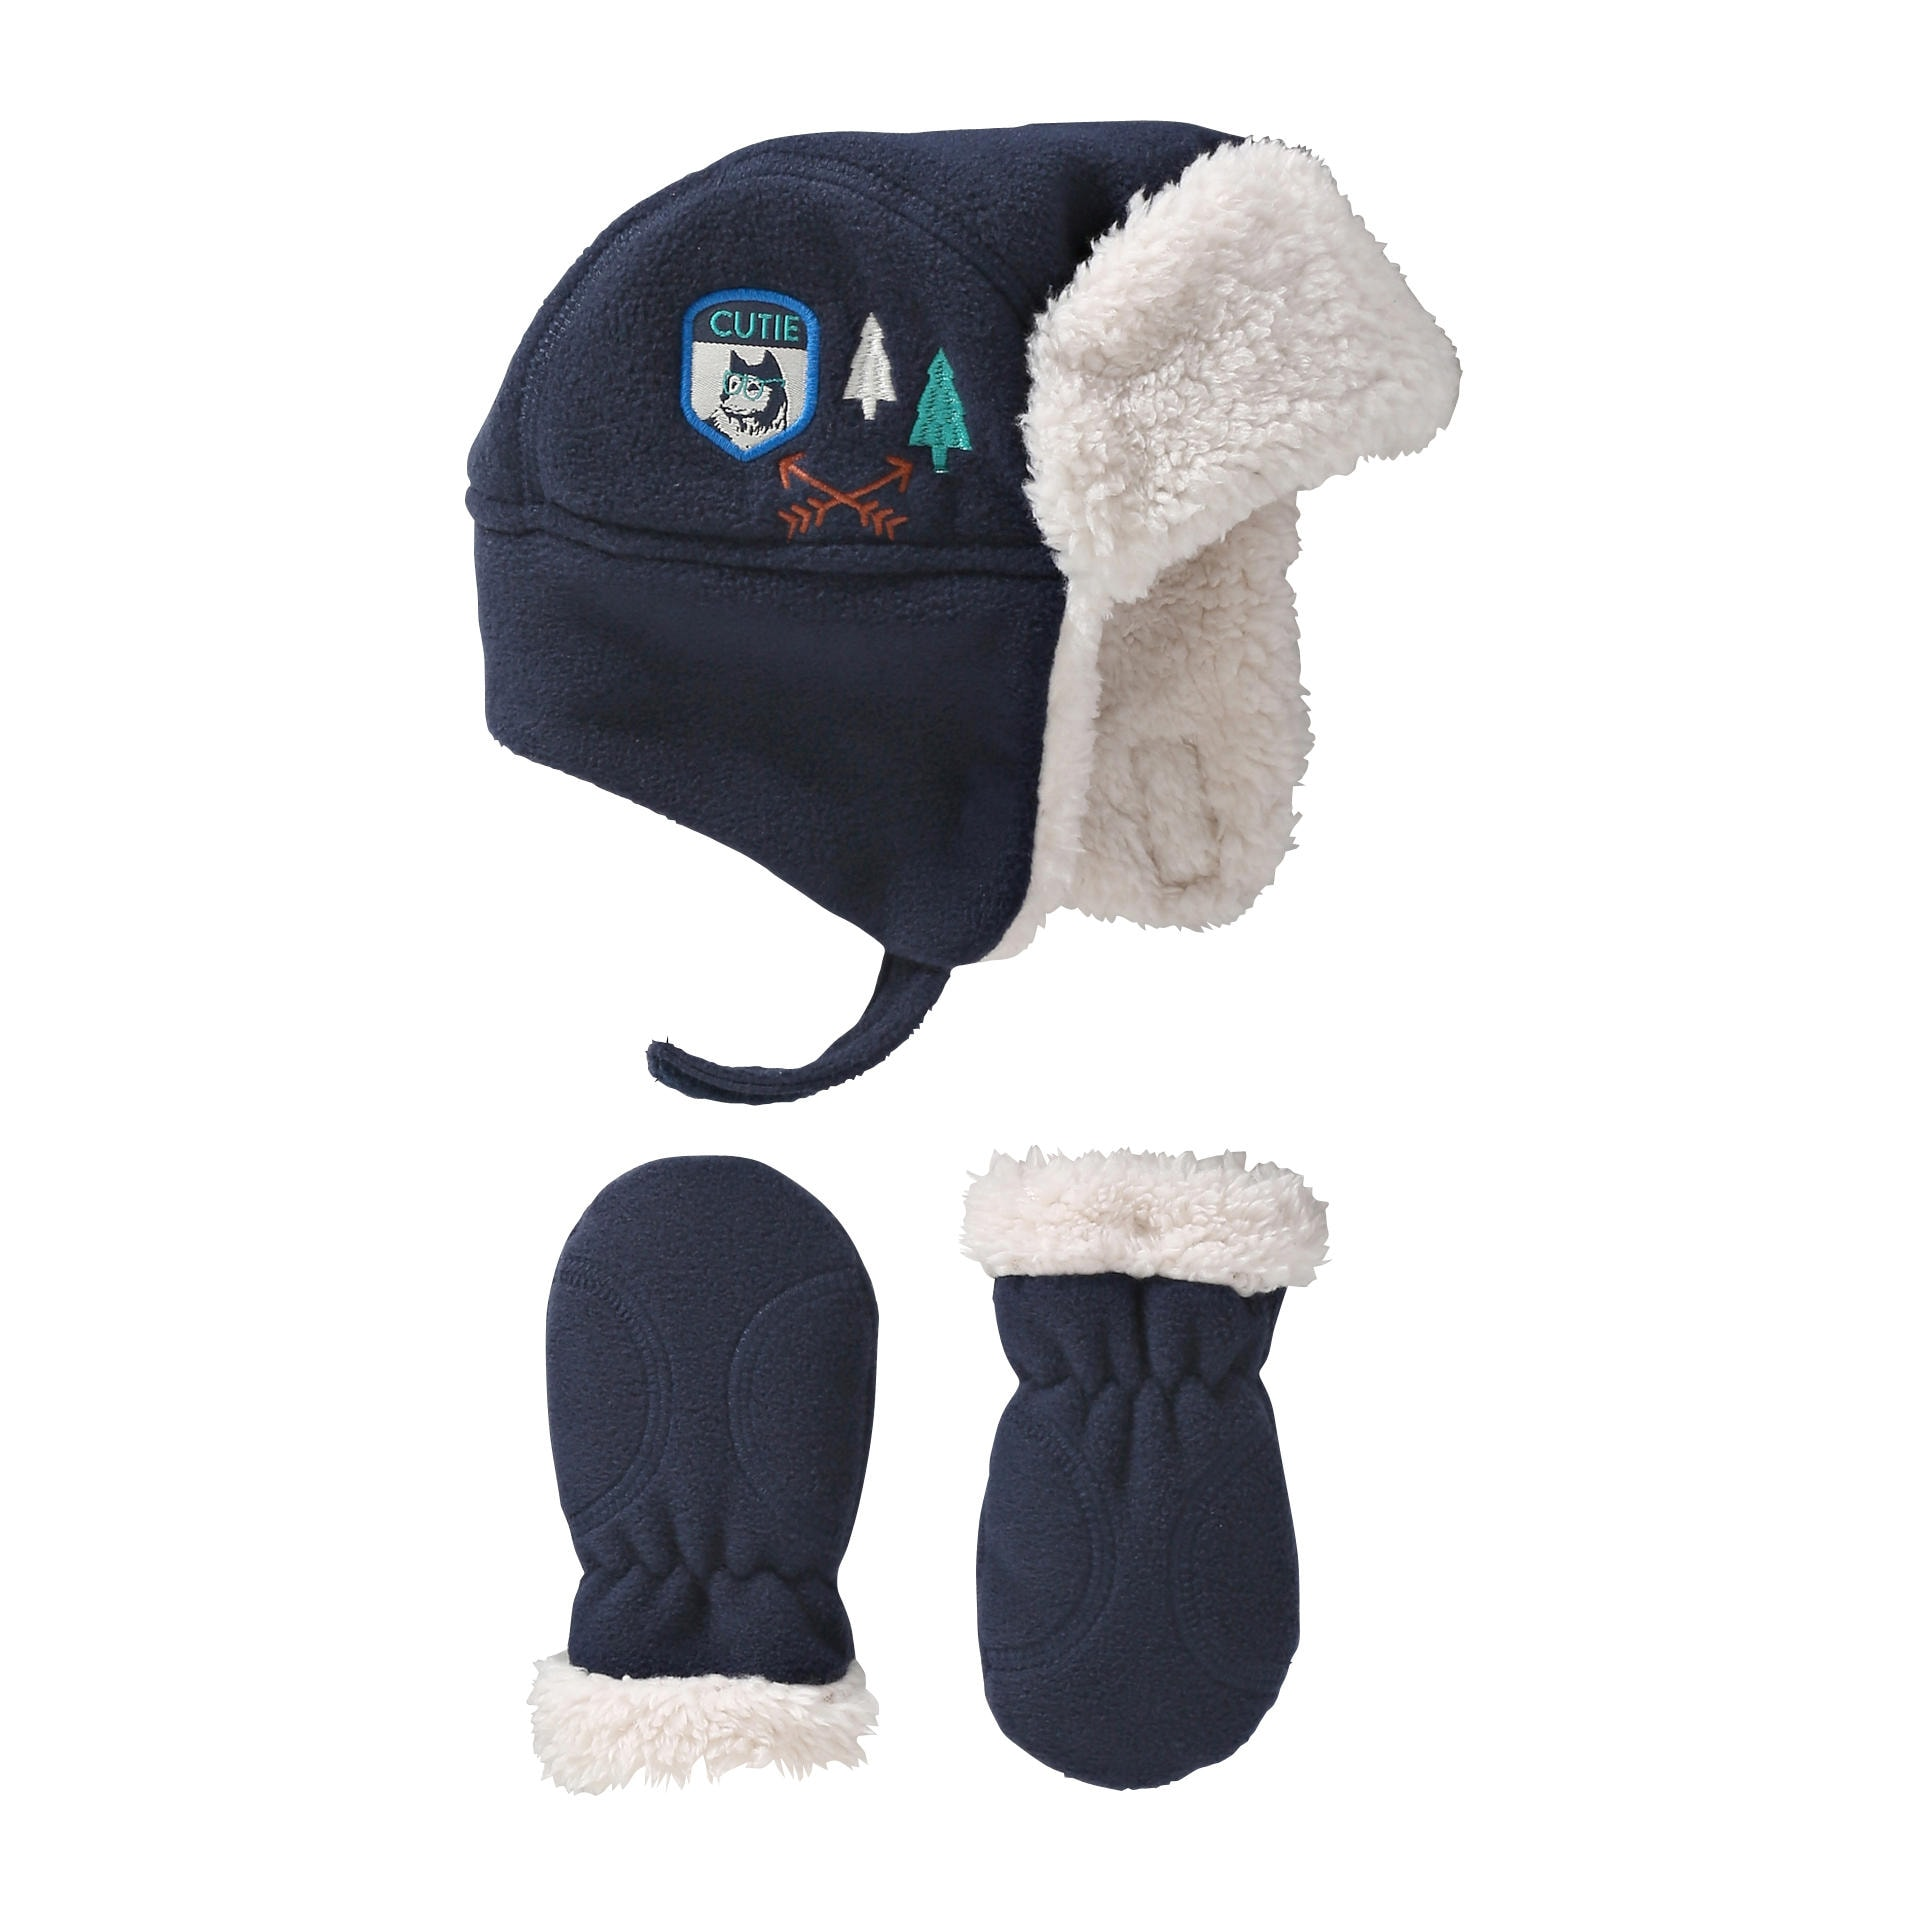 Baby Boys  Hat and Mittens Set in Navy from Joe Fresh 8fe34596f47